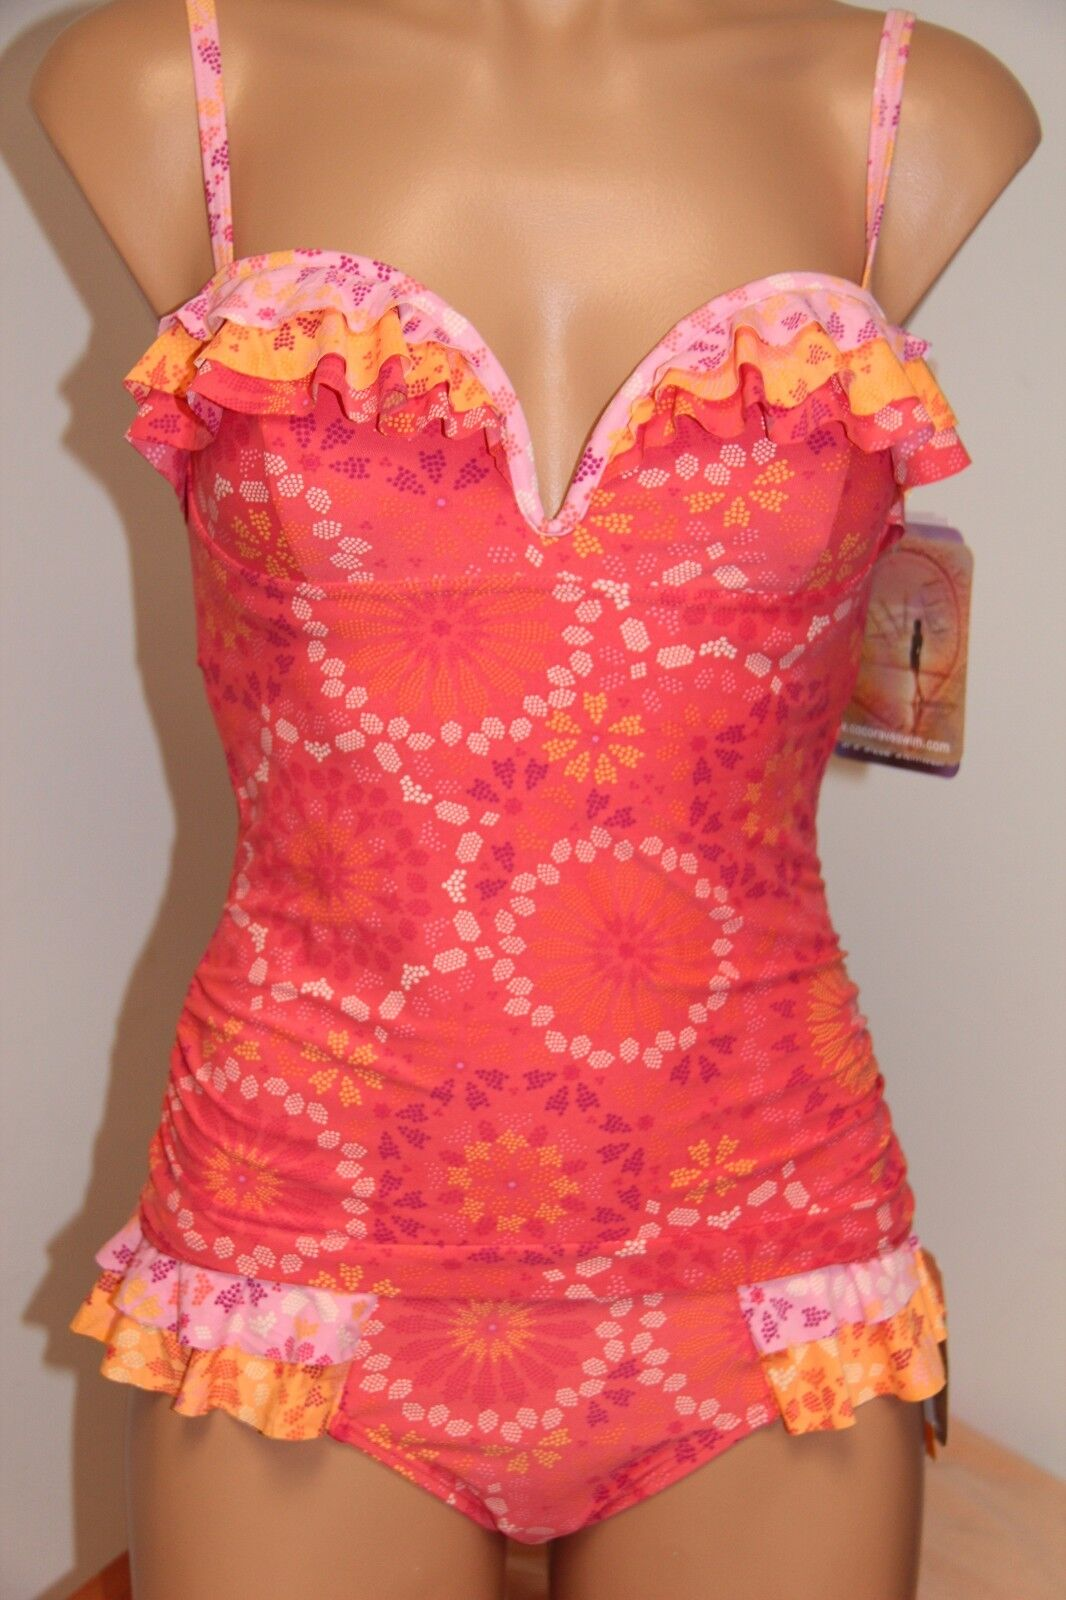 NWT Coco Rave Swimsuit Tankini 2pc set Size S 30 32D Cup U-Wire Coral Ruffled